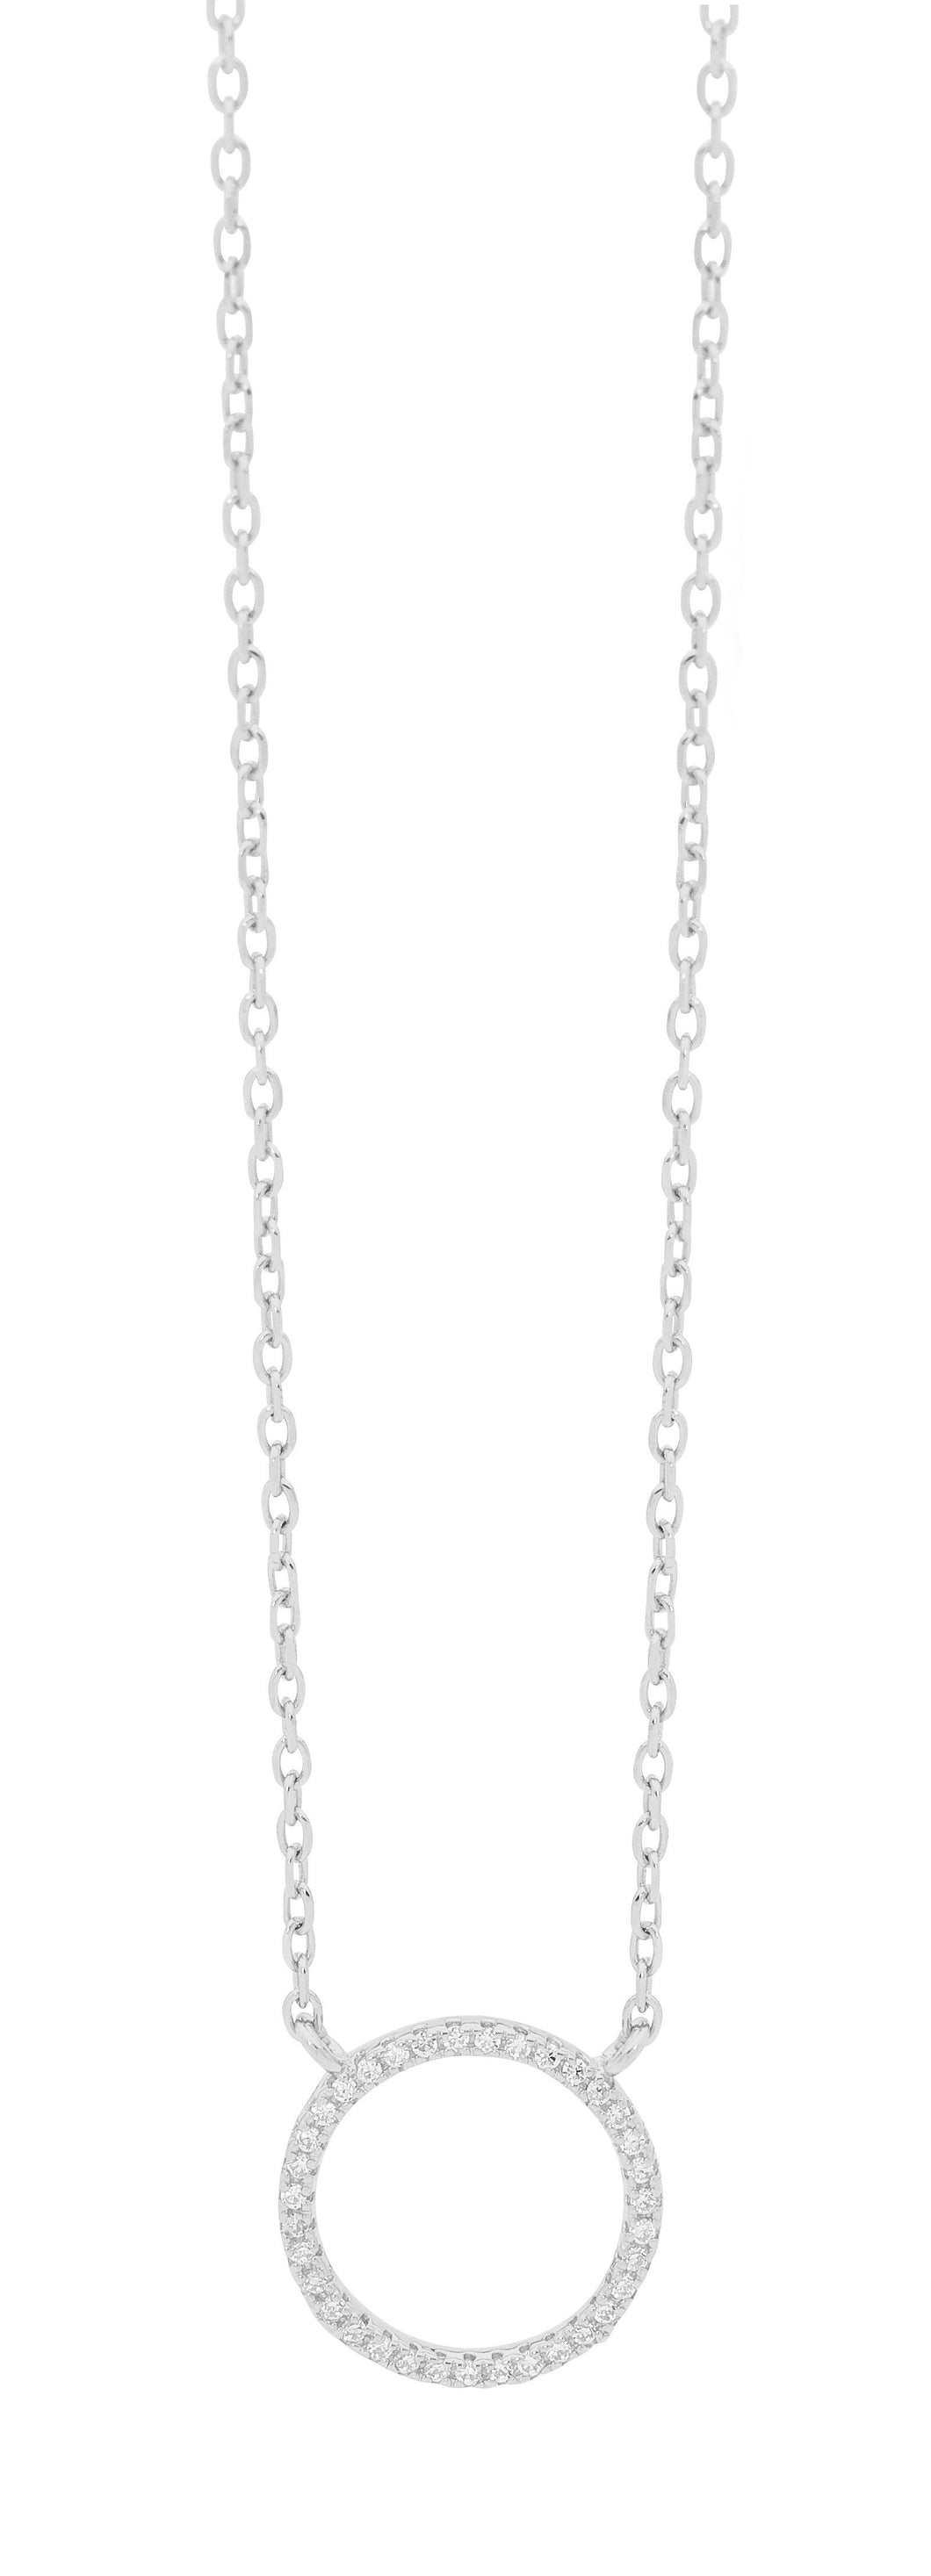 SS 18mm WH CZ Circle Pendant w/attached chain